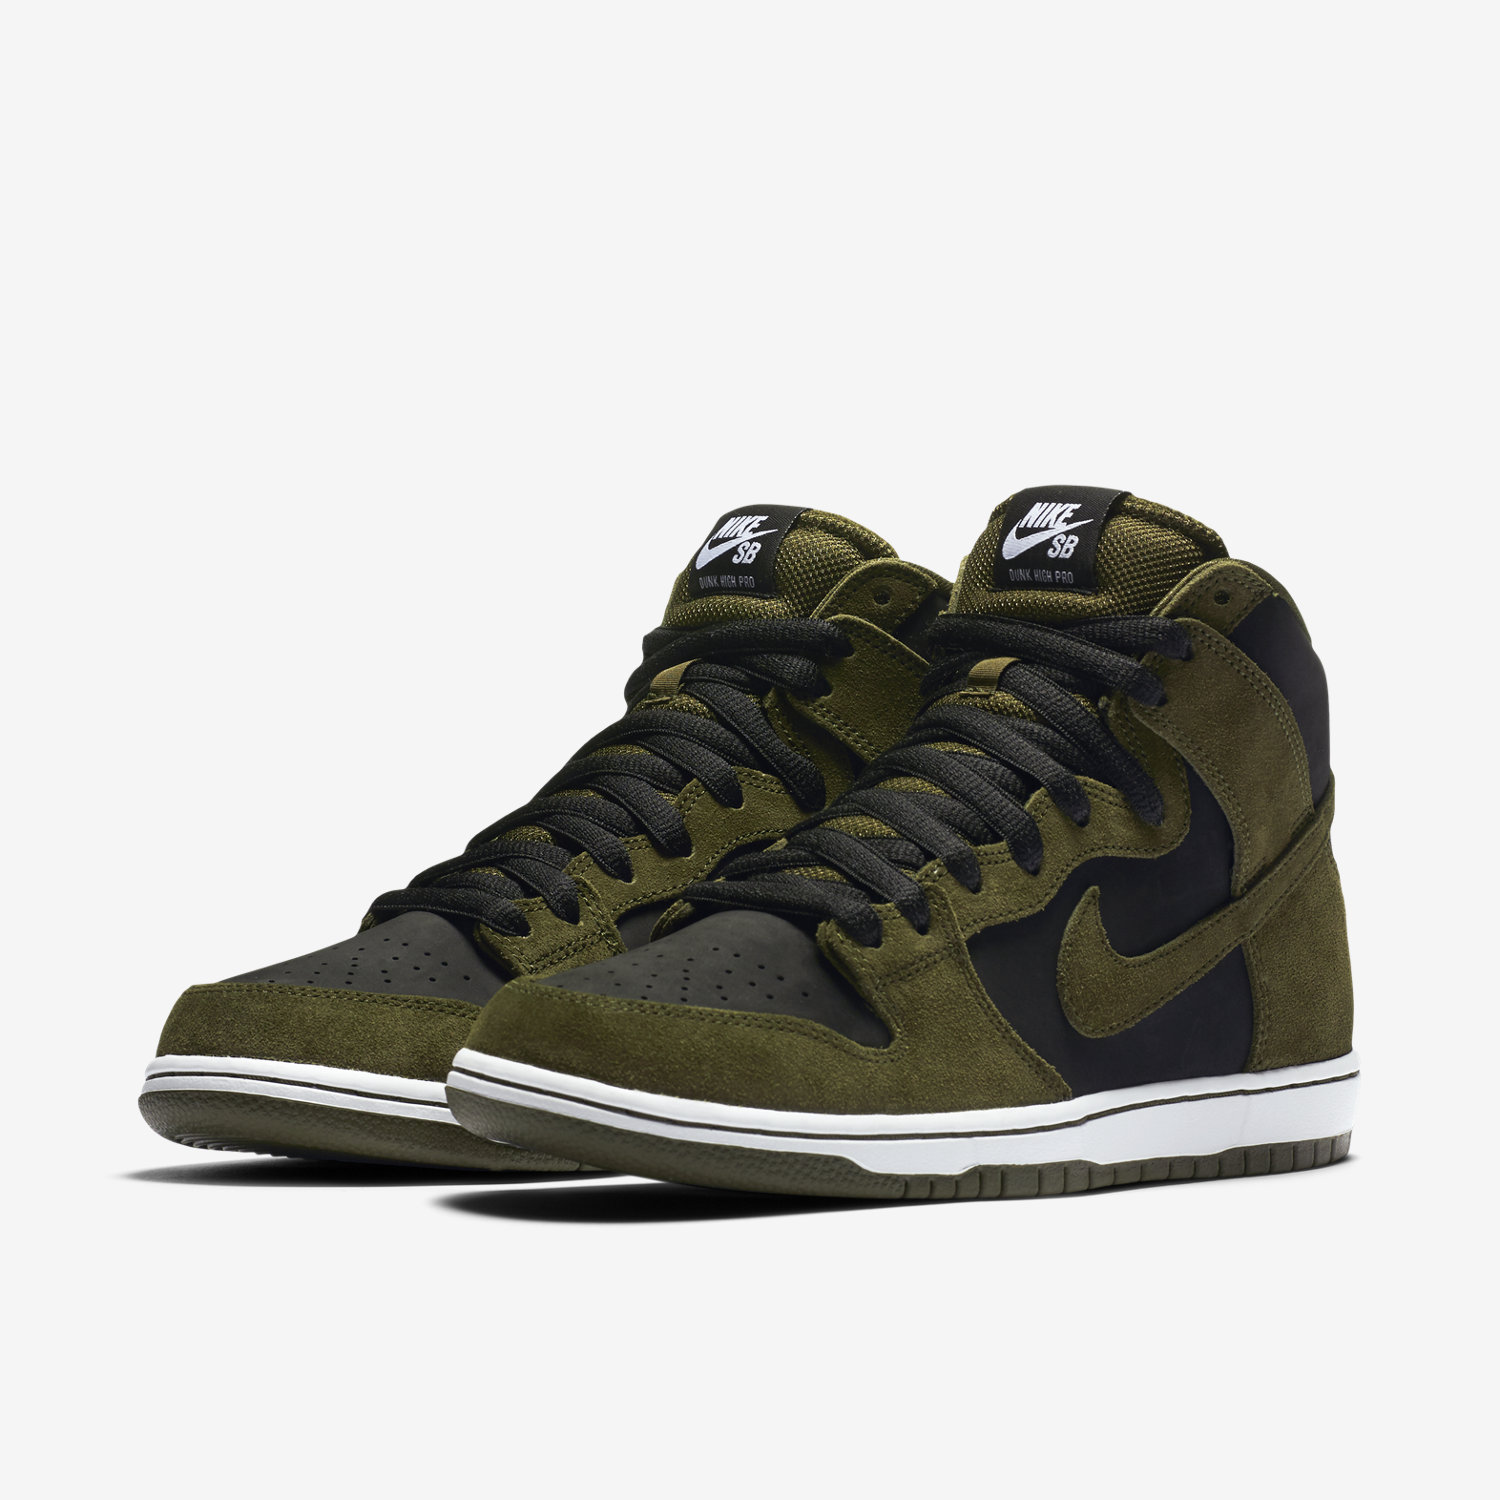 nike sb dunk high pro for sale